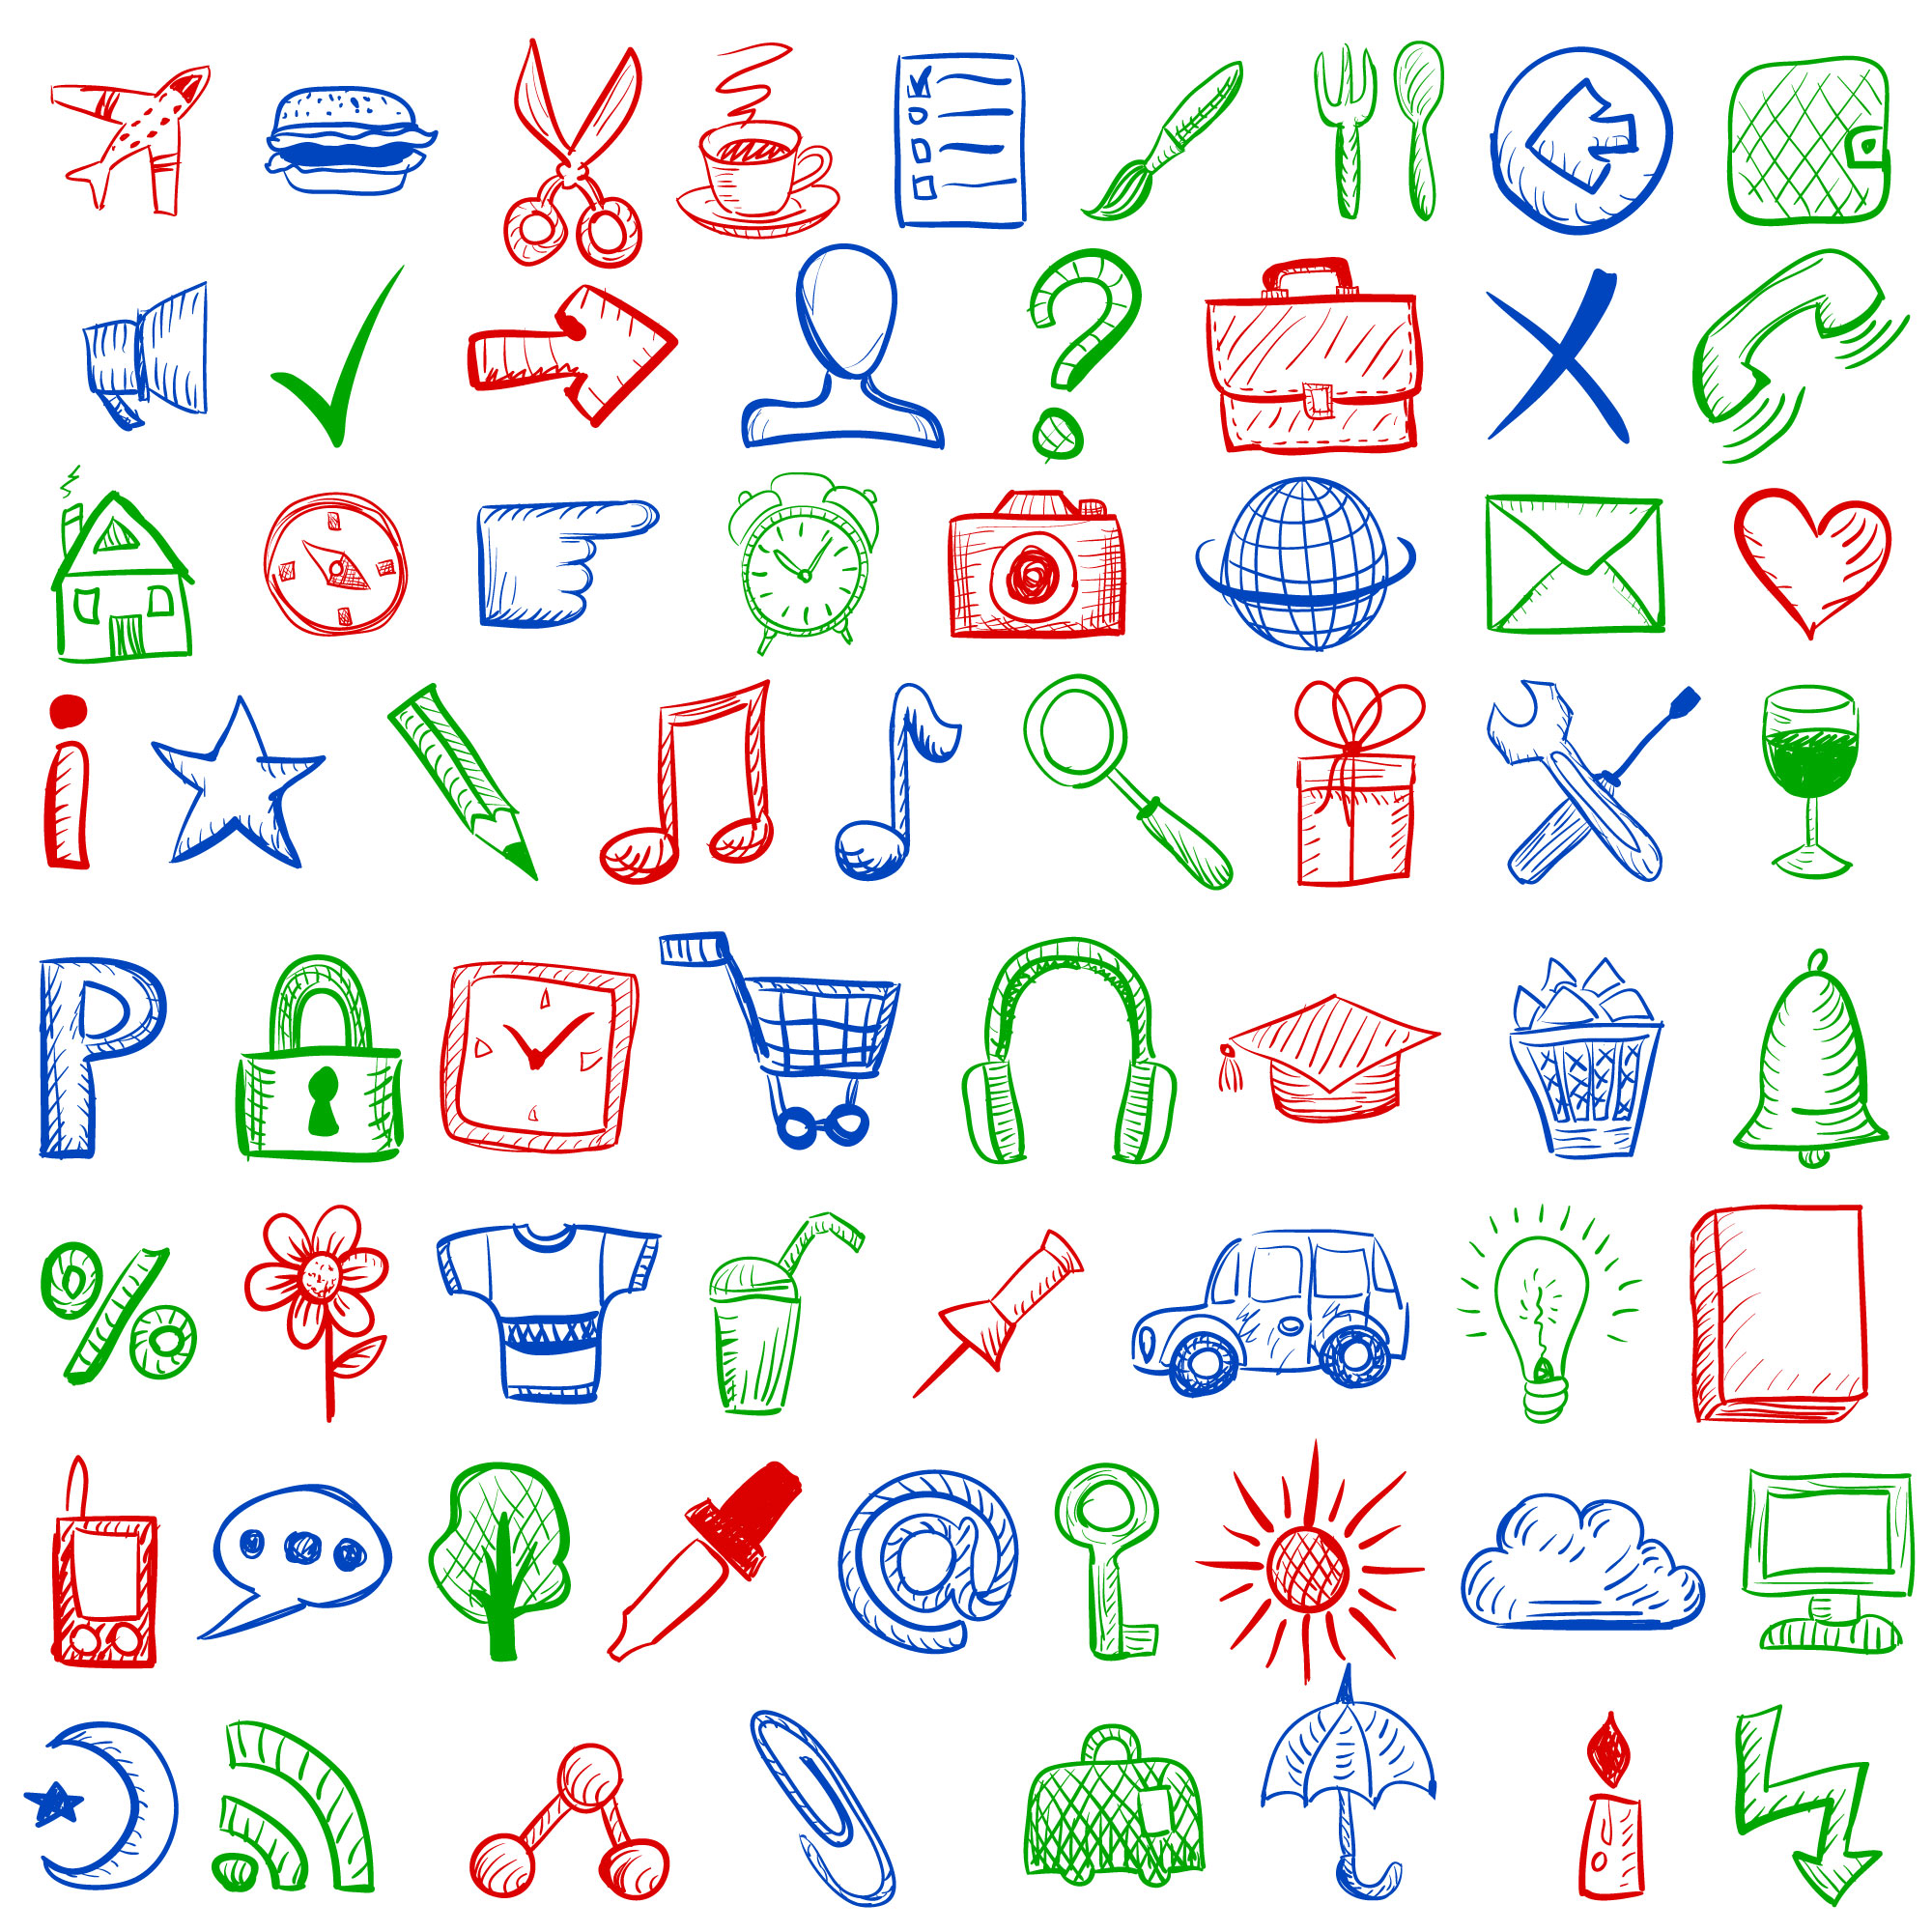 Hand drawn style icons for mobile applications